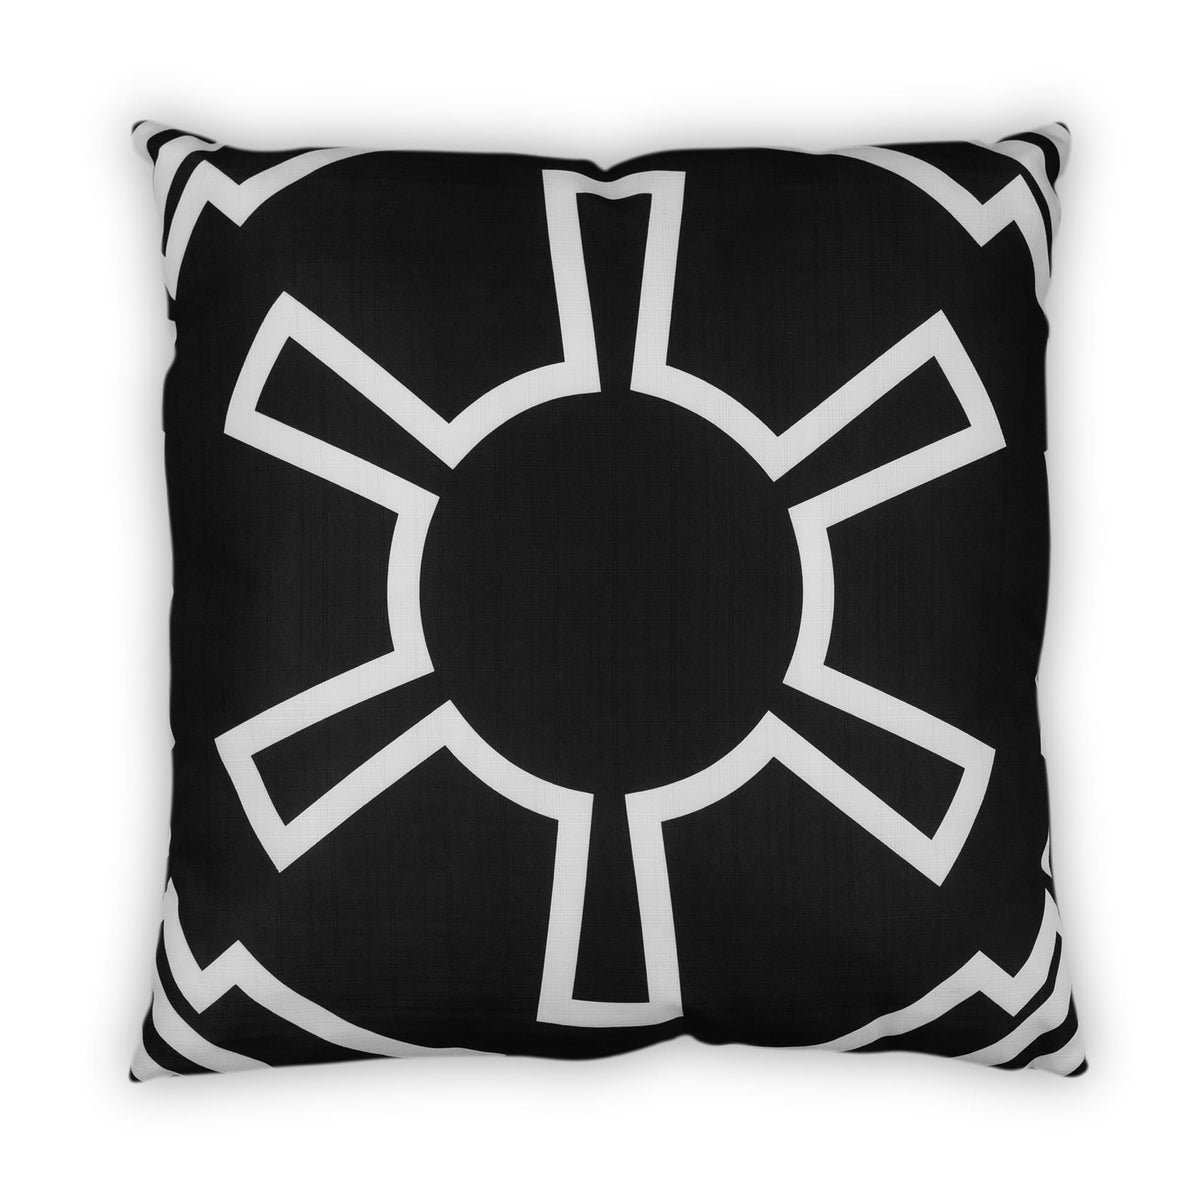 Star Wars Large Throw Pillow | Empire Imperial Symbol Design | 25 x 25 Inches